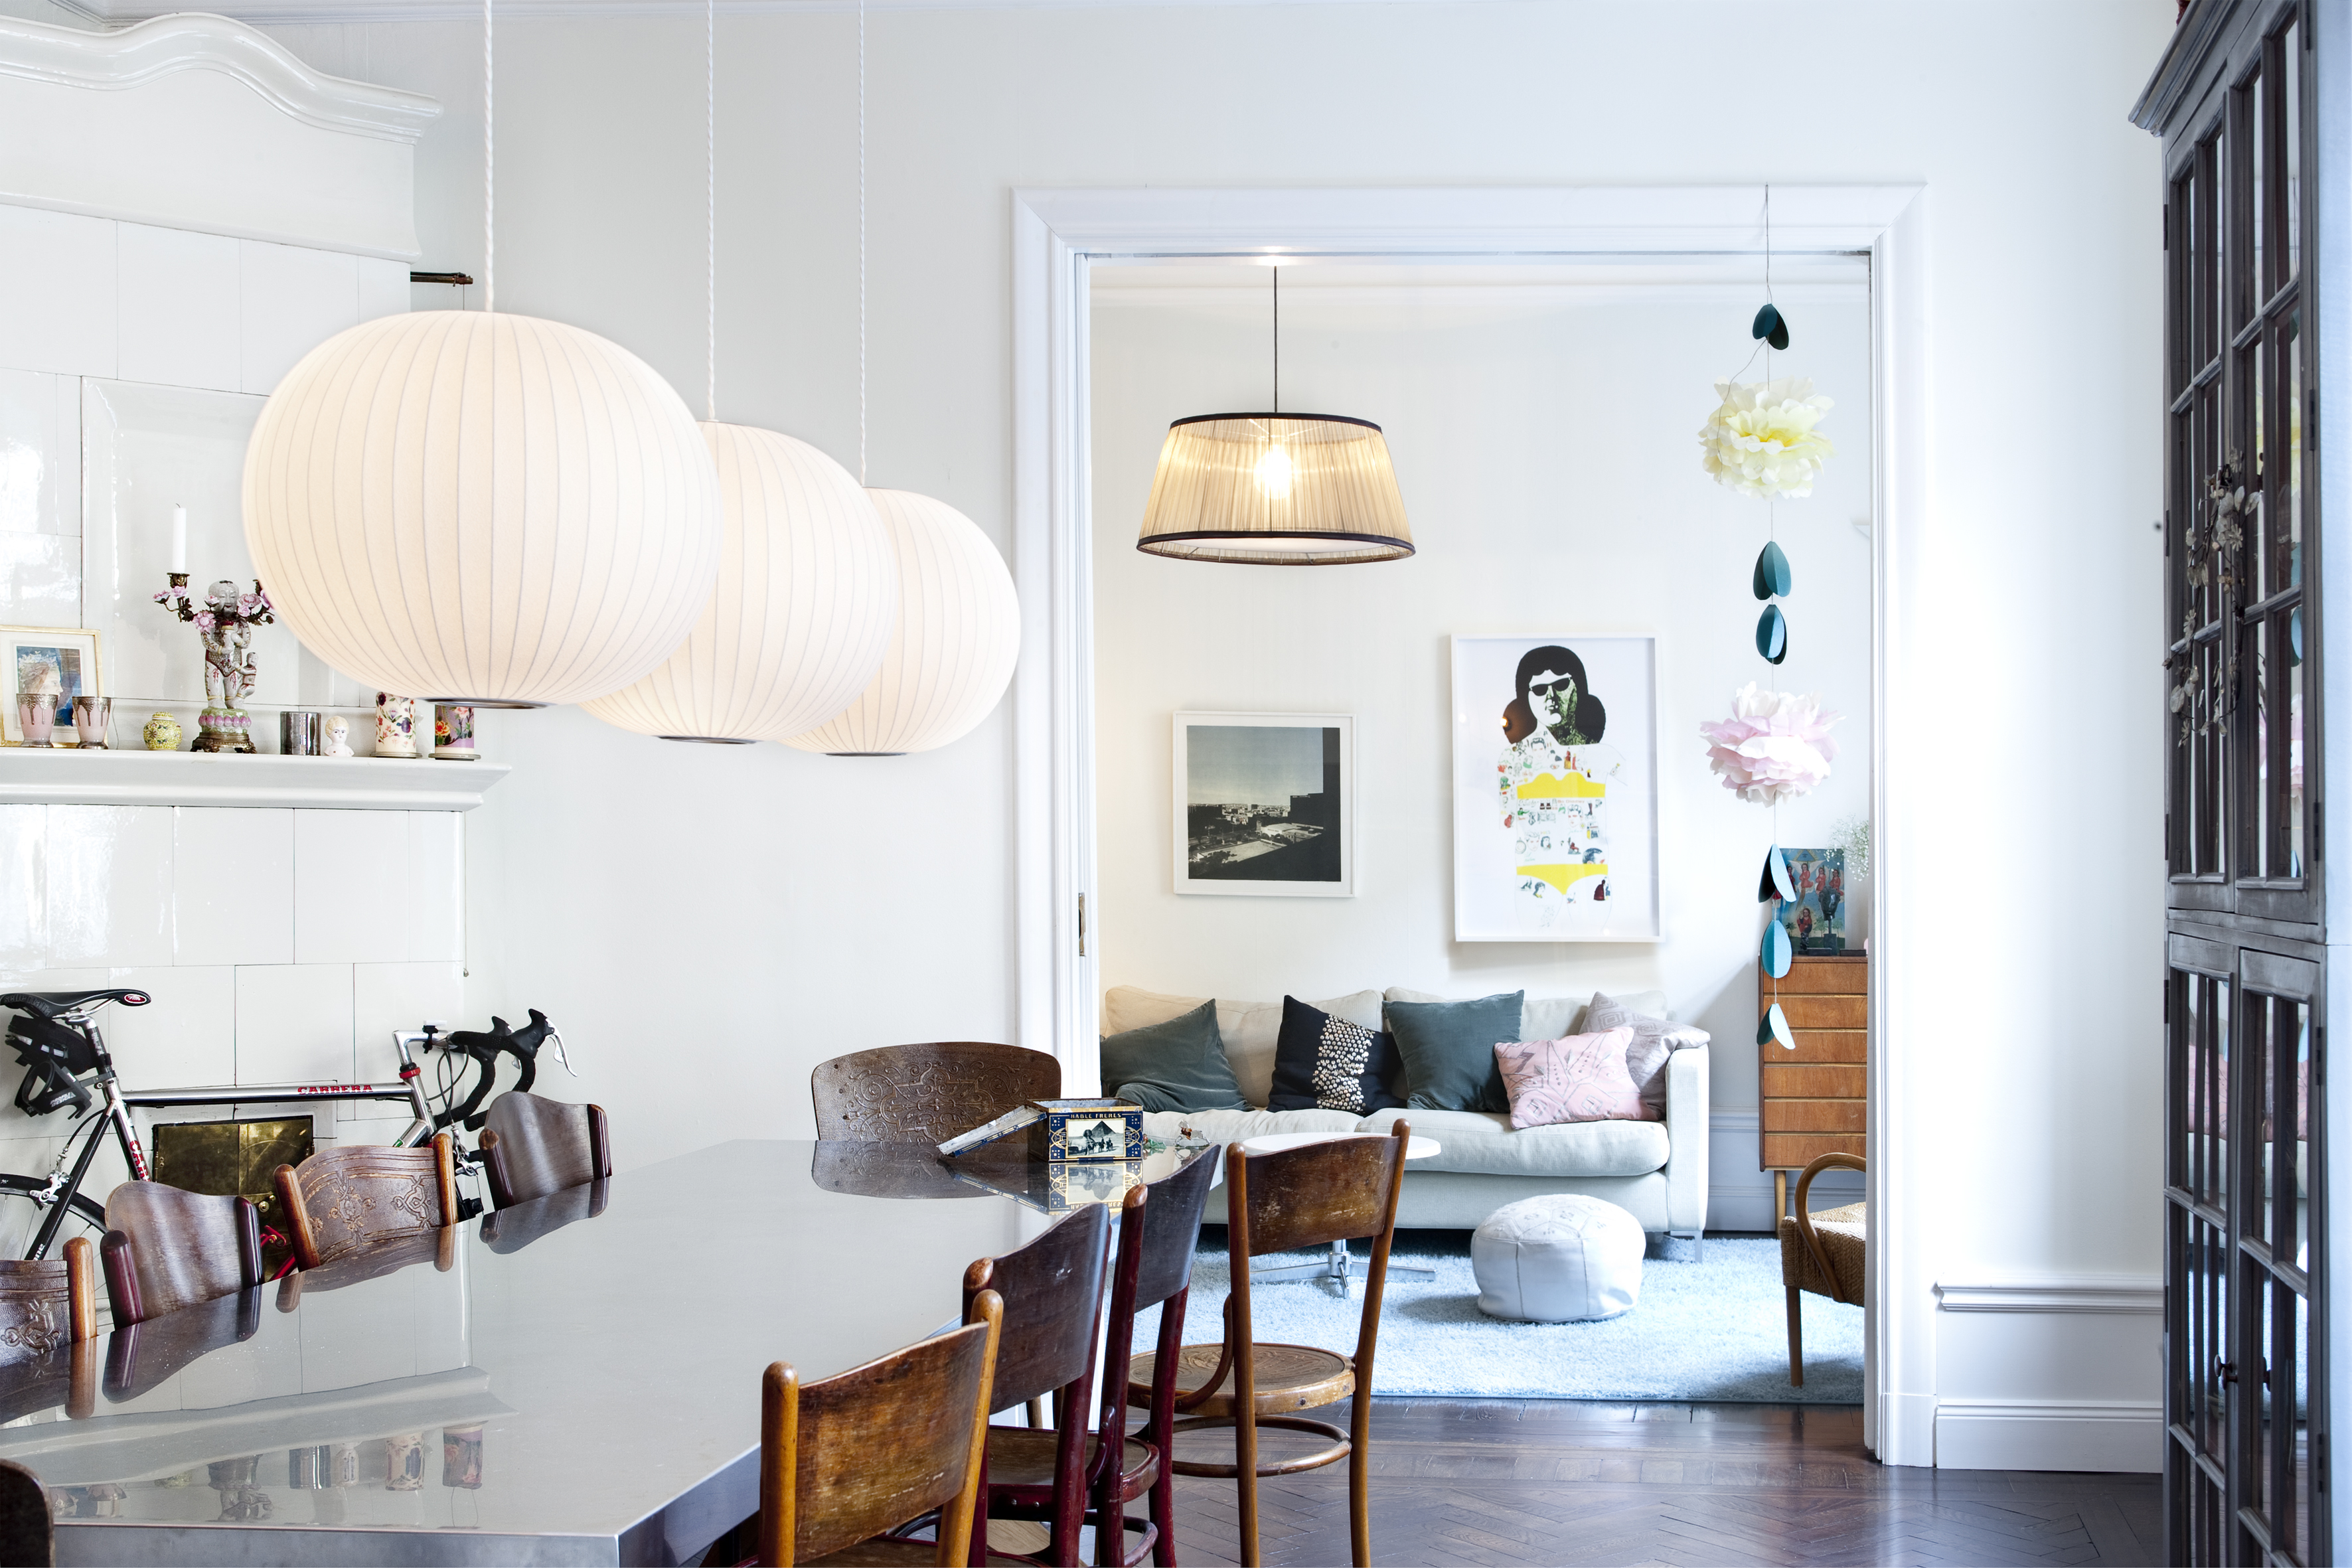 8 Design Lessons You Can Learn From Scandinavian Interiors